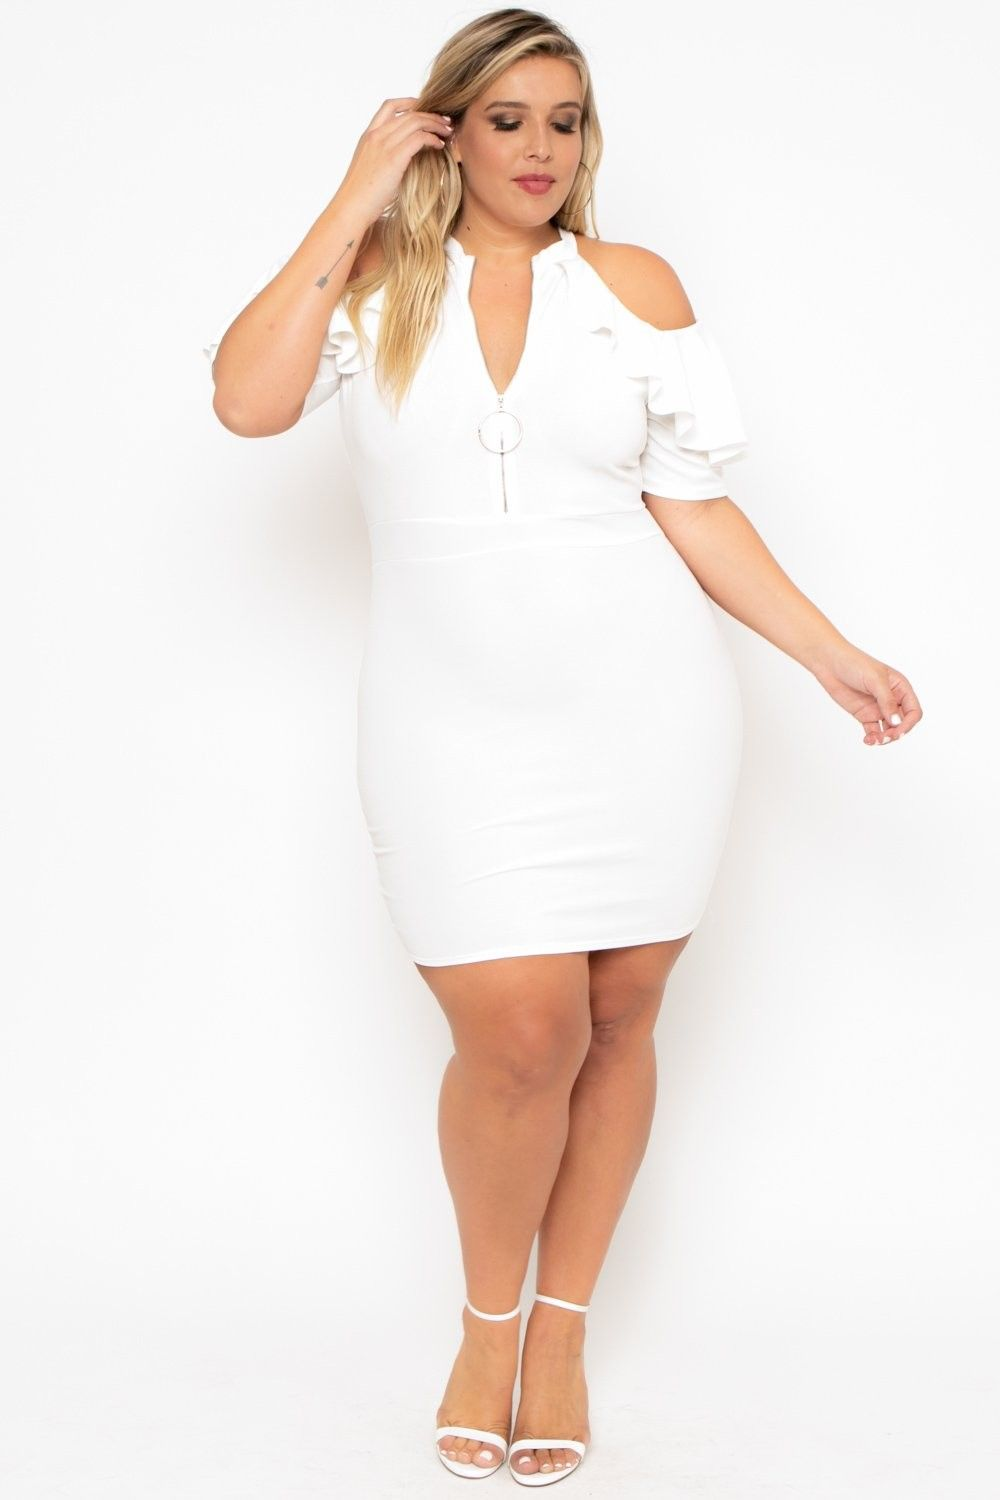 29166d37163cf Plus Size Zip Me Up Dress - Ivory  36.00  fashion  ootd  outfit  oufits   moda  plussize  dress  dresses  plussizeclothing  plussizedress  curve   curvy  sexy ...